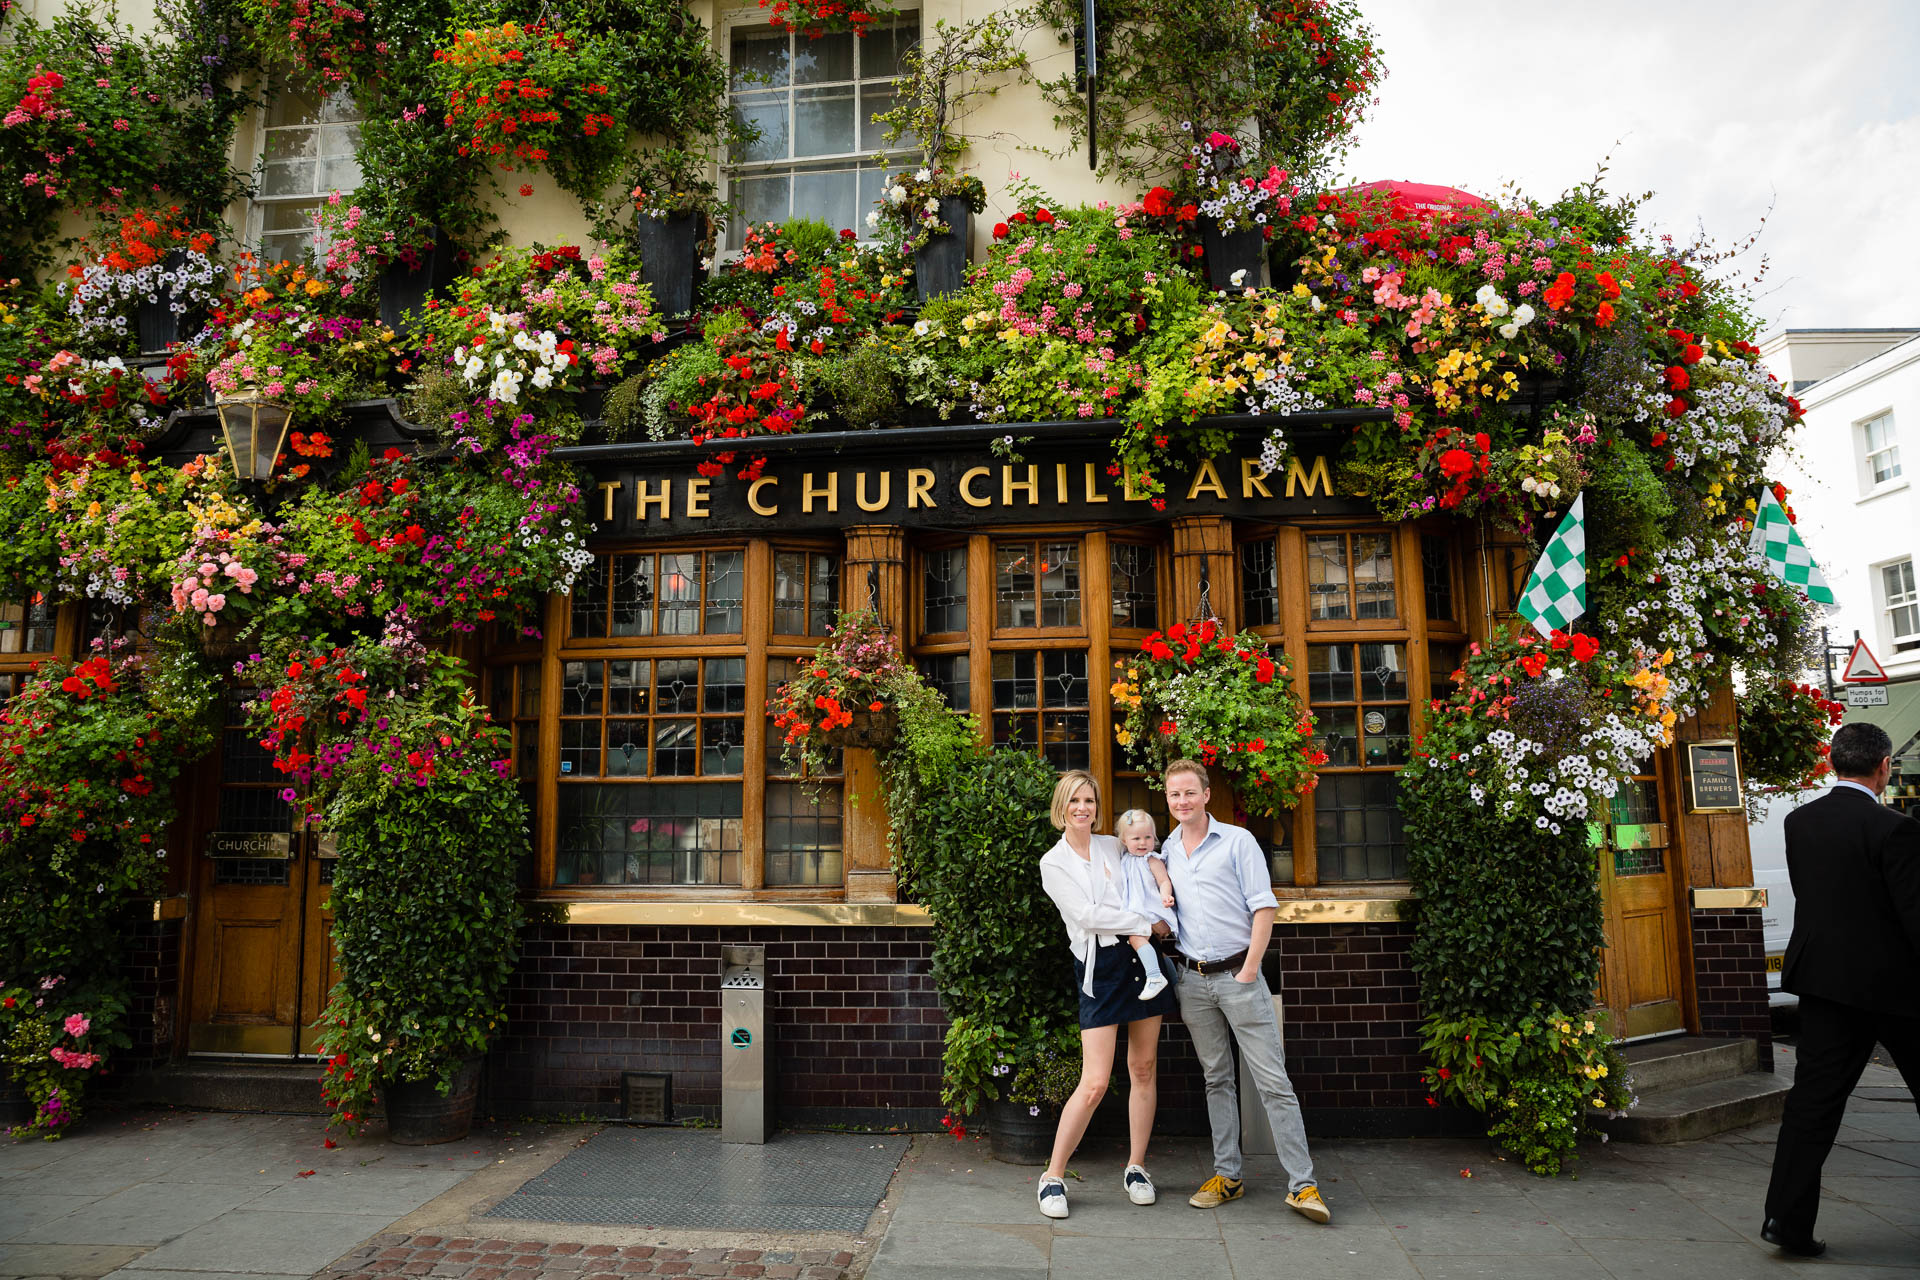 london photoshoot in front of pub with flowers